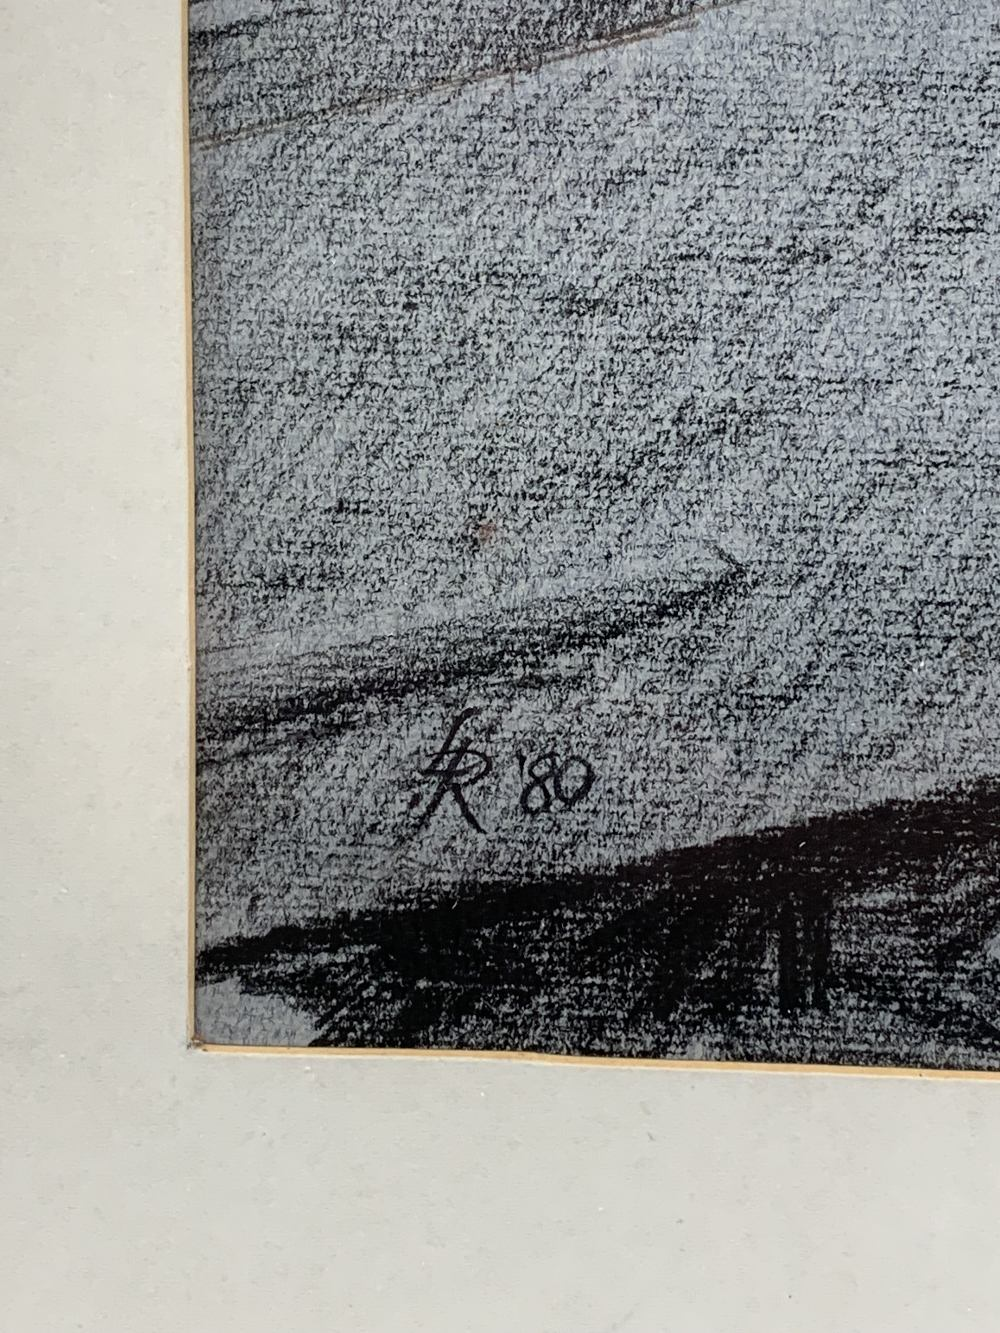 LEONARD RENTON charcoal - boats and river with distant church, initialled and dated 1980, 45 x - Image 2 of 2